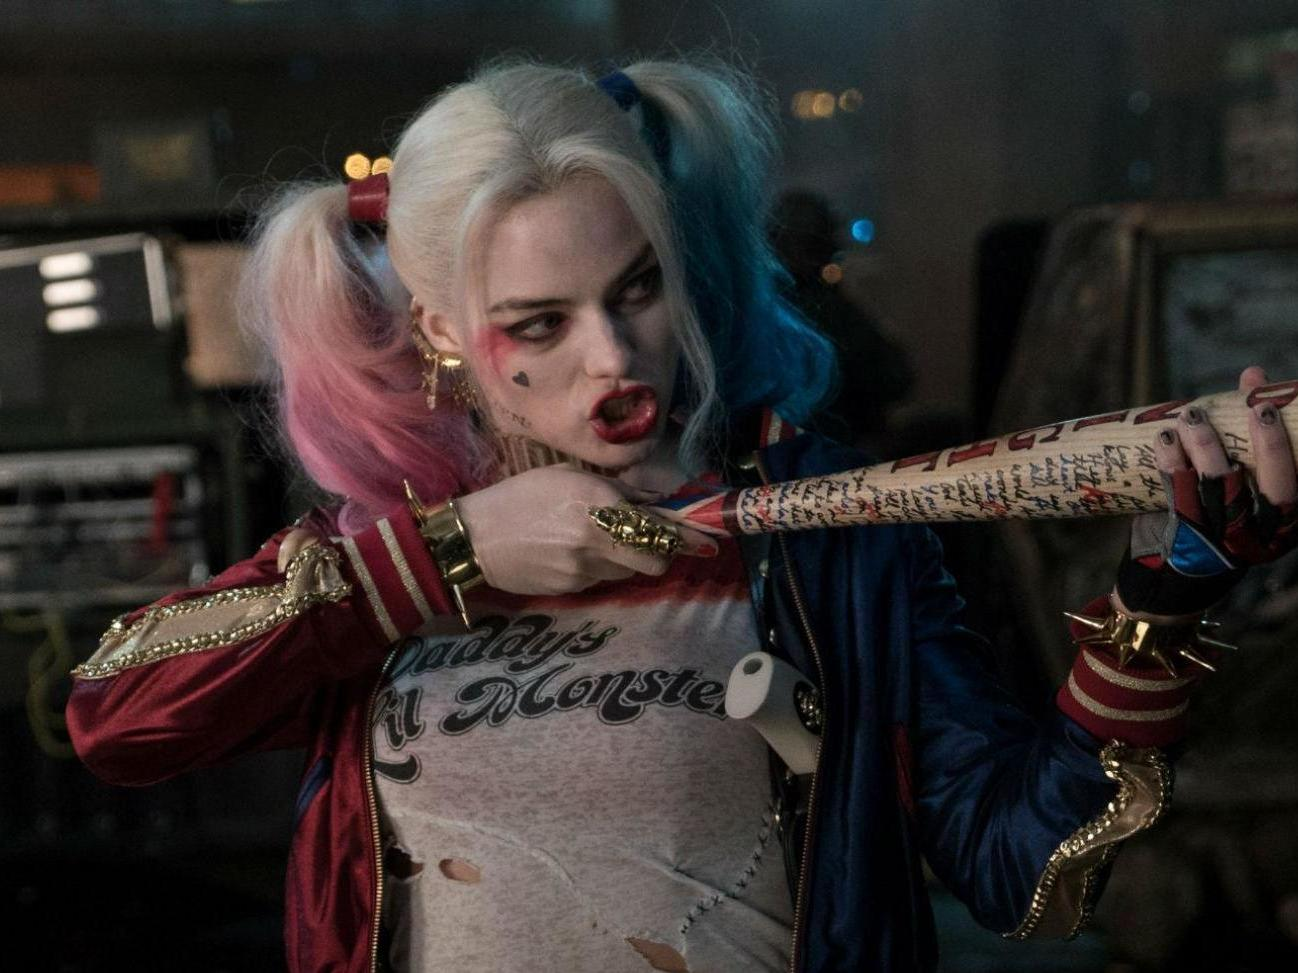 Suicide Squad Margot Robbies Harley Quinn Hotpants So Tiny They Were Photoshopped To Look Longer In Trailers